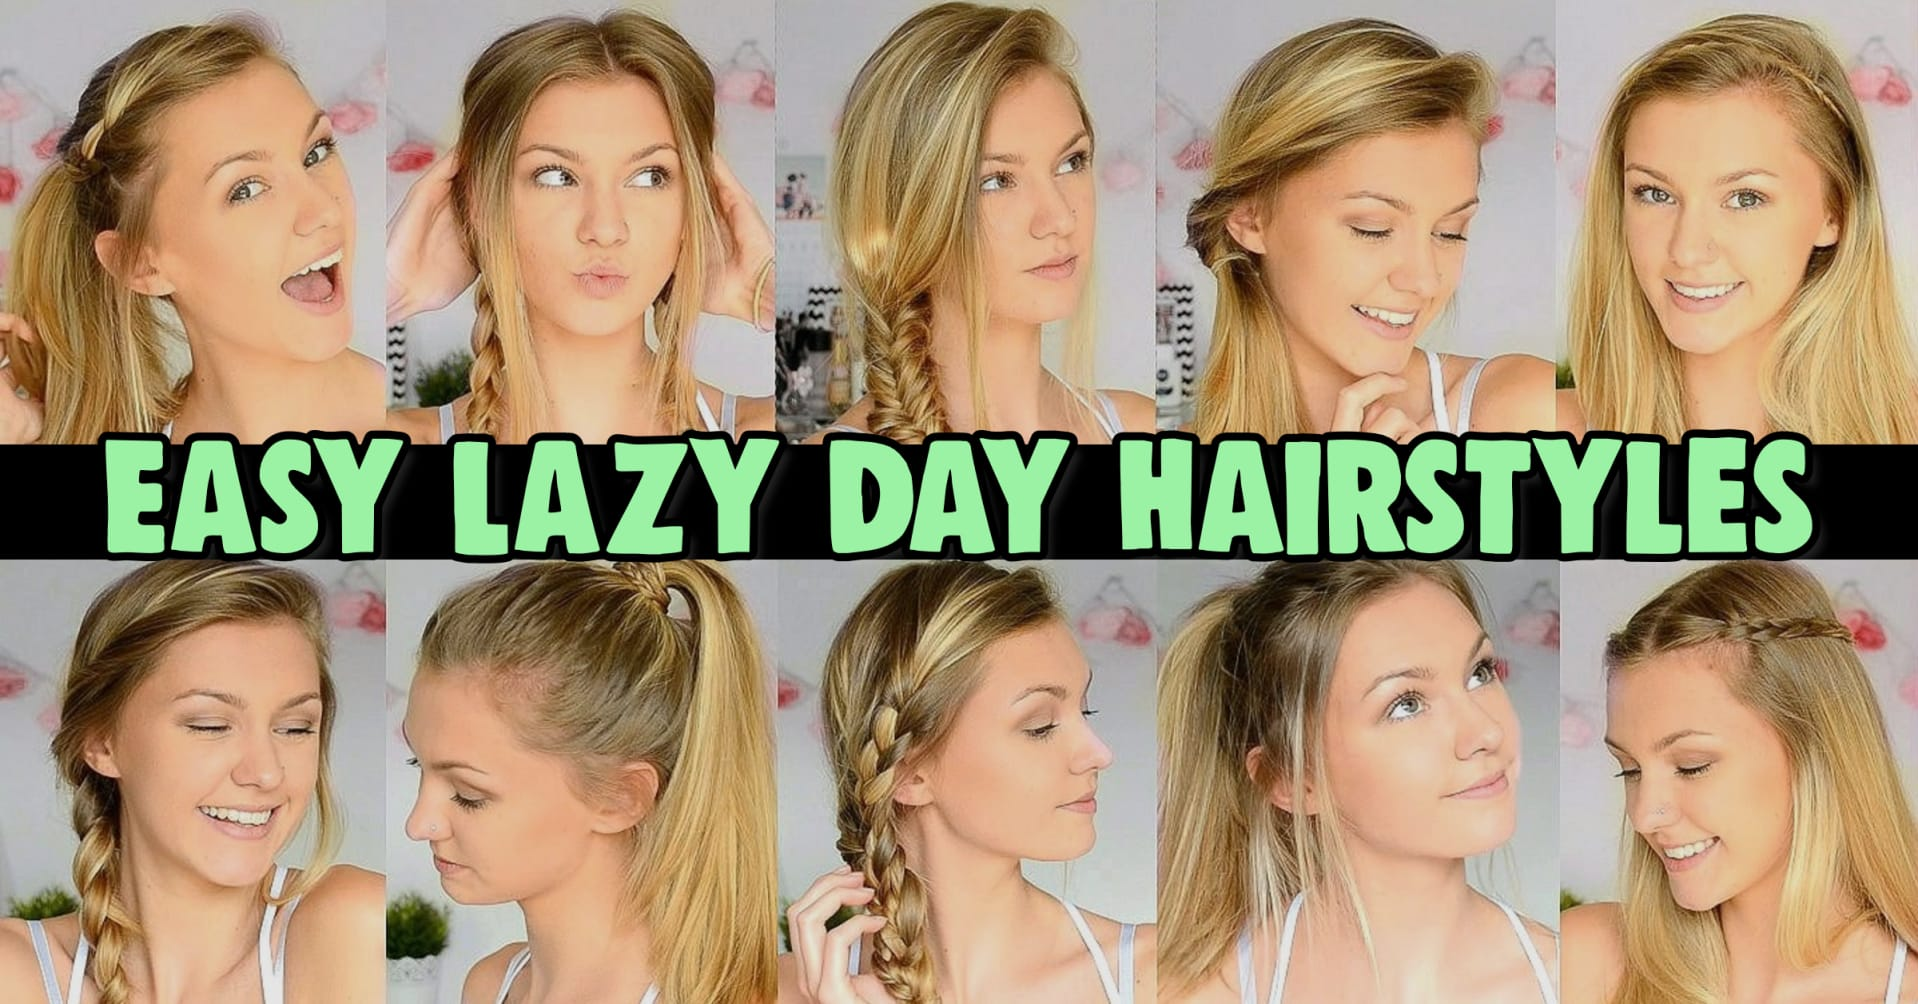 Lazy hairstyles - easy lazy day hairstyle ideas for running late day or those lazy girl lazy days